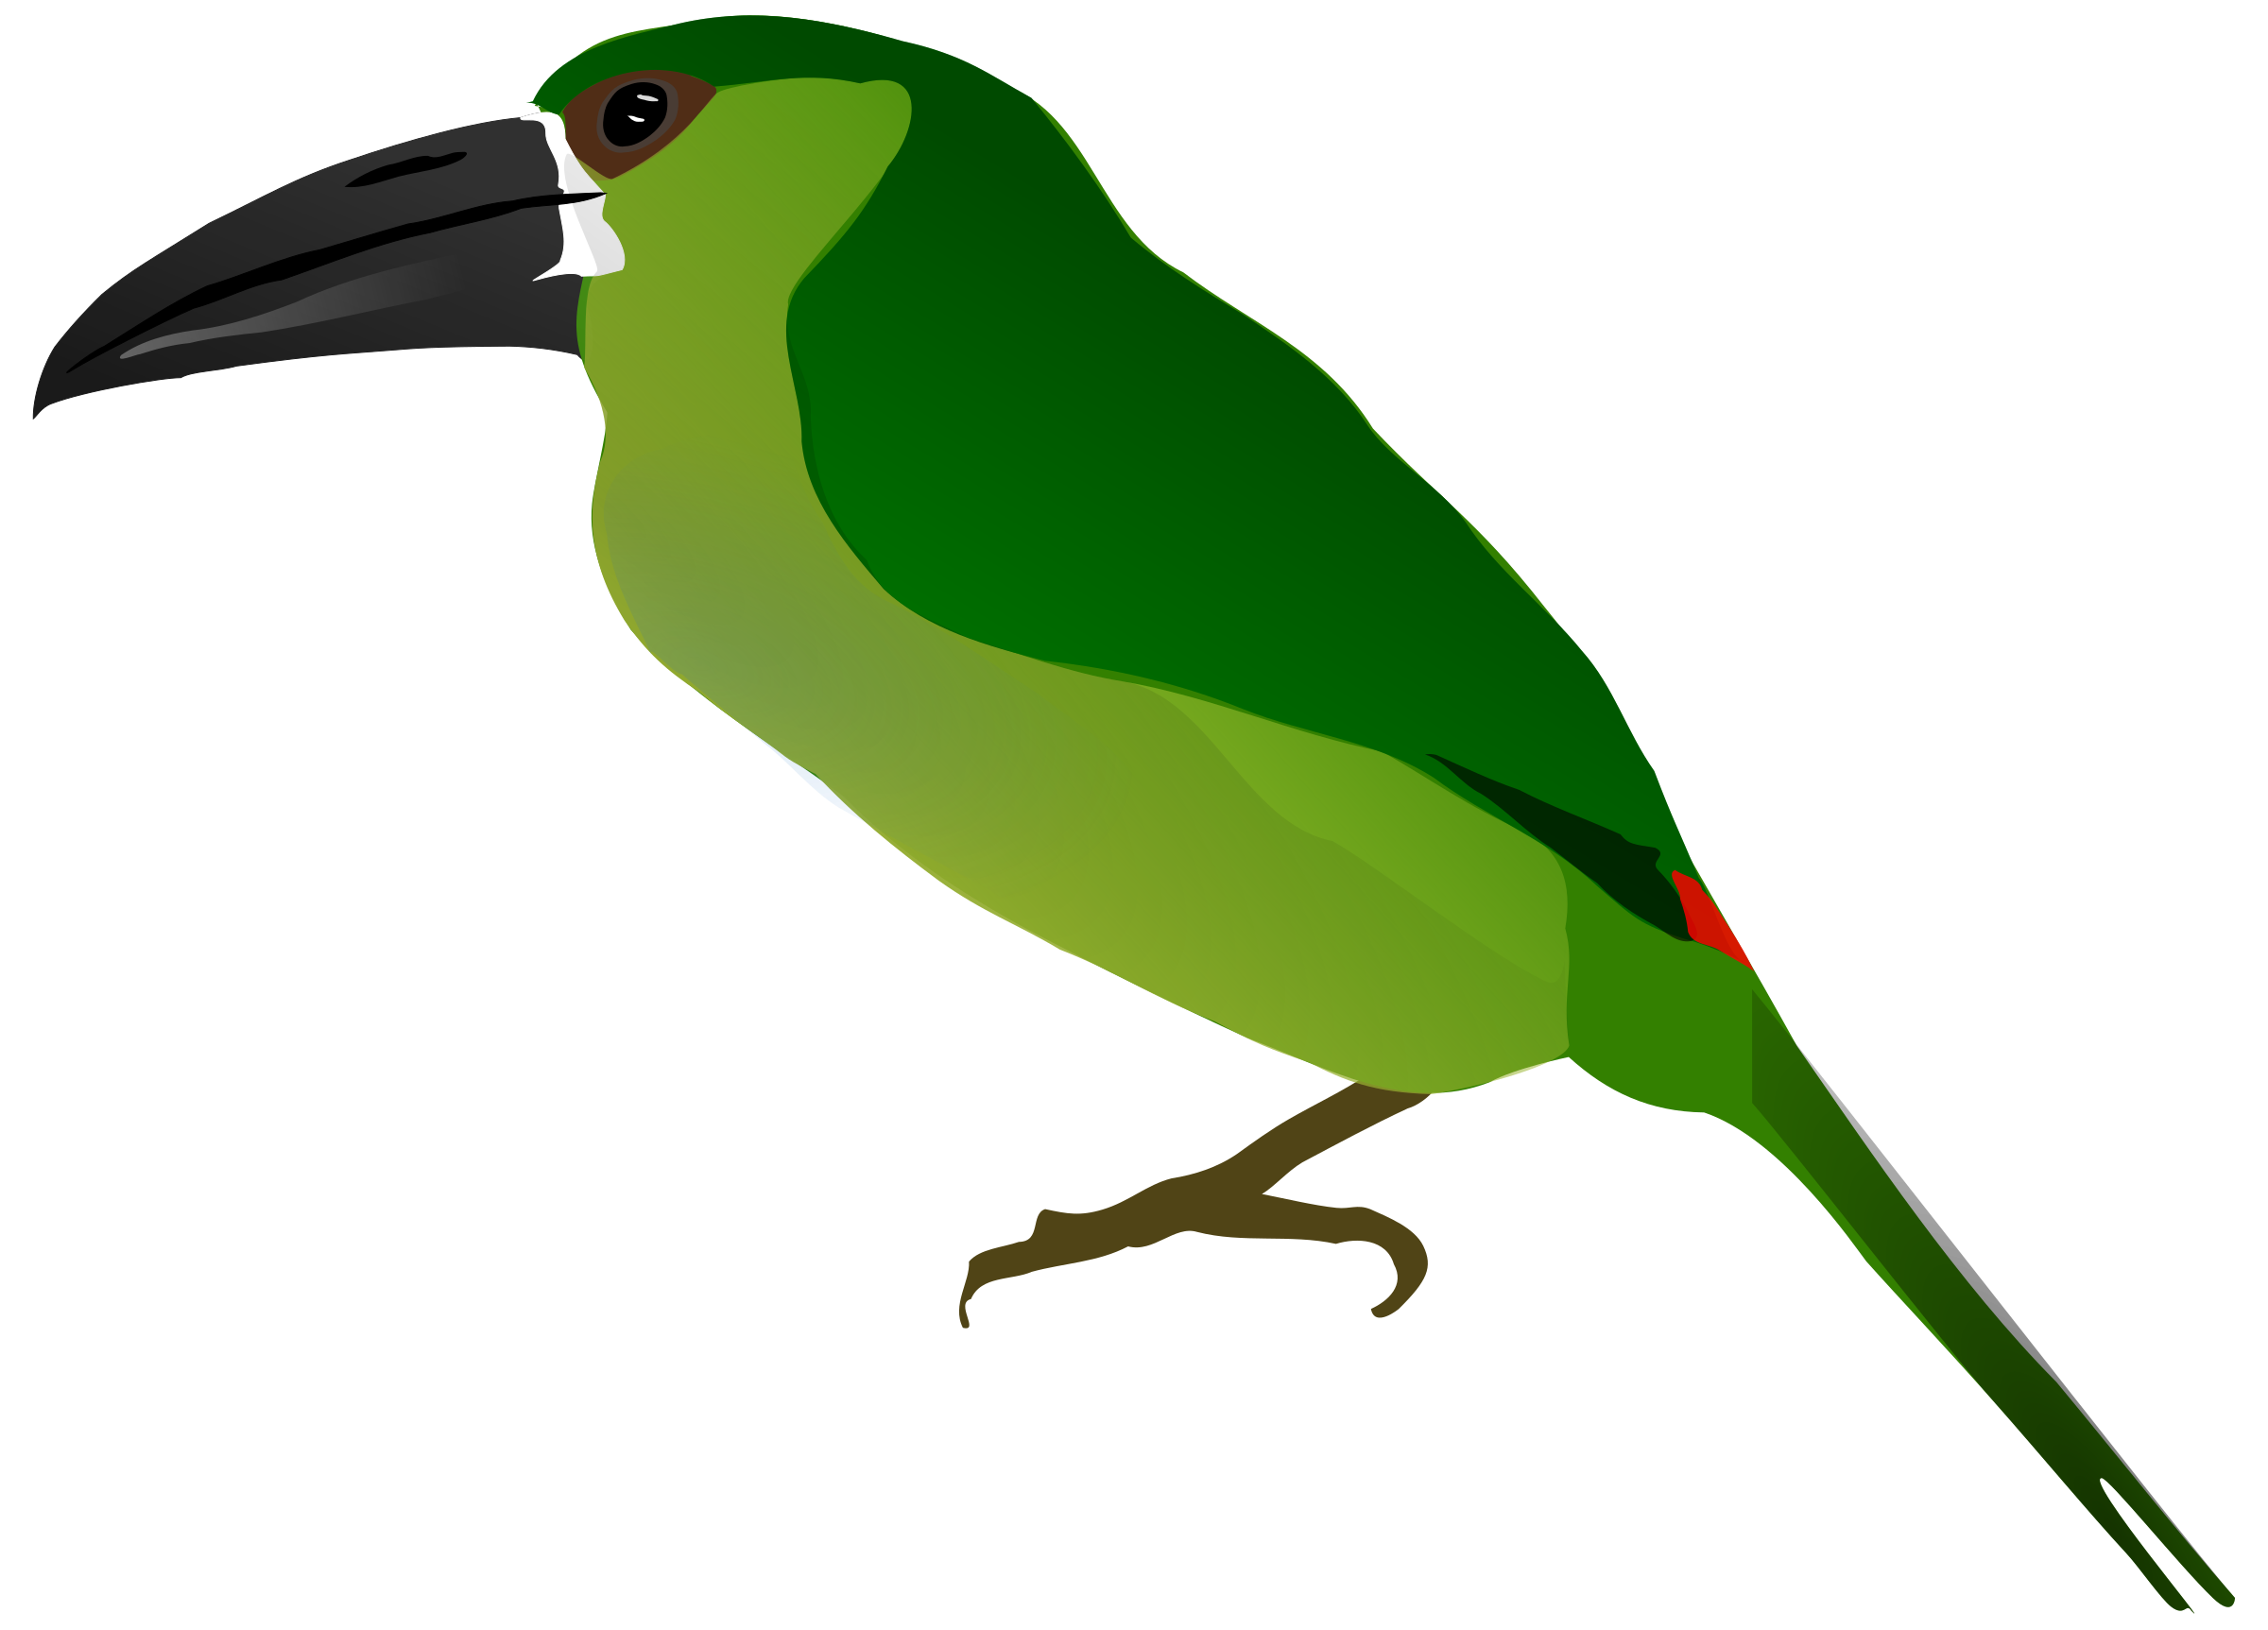 Toucanet svg #18, Download drawings